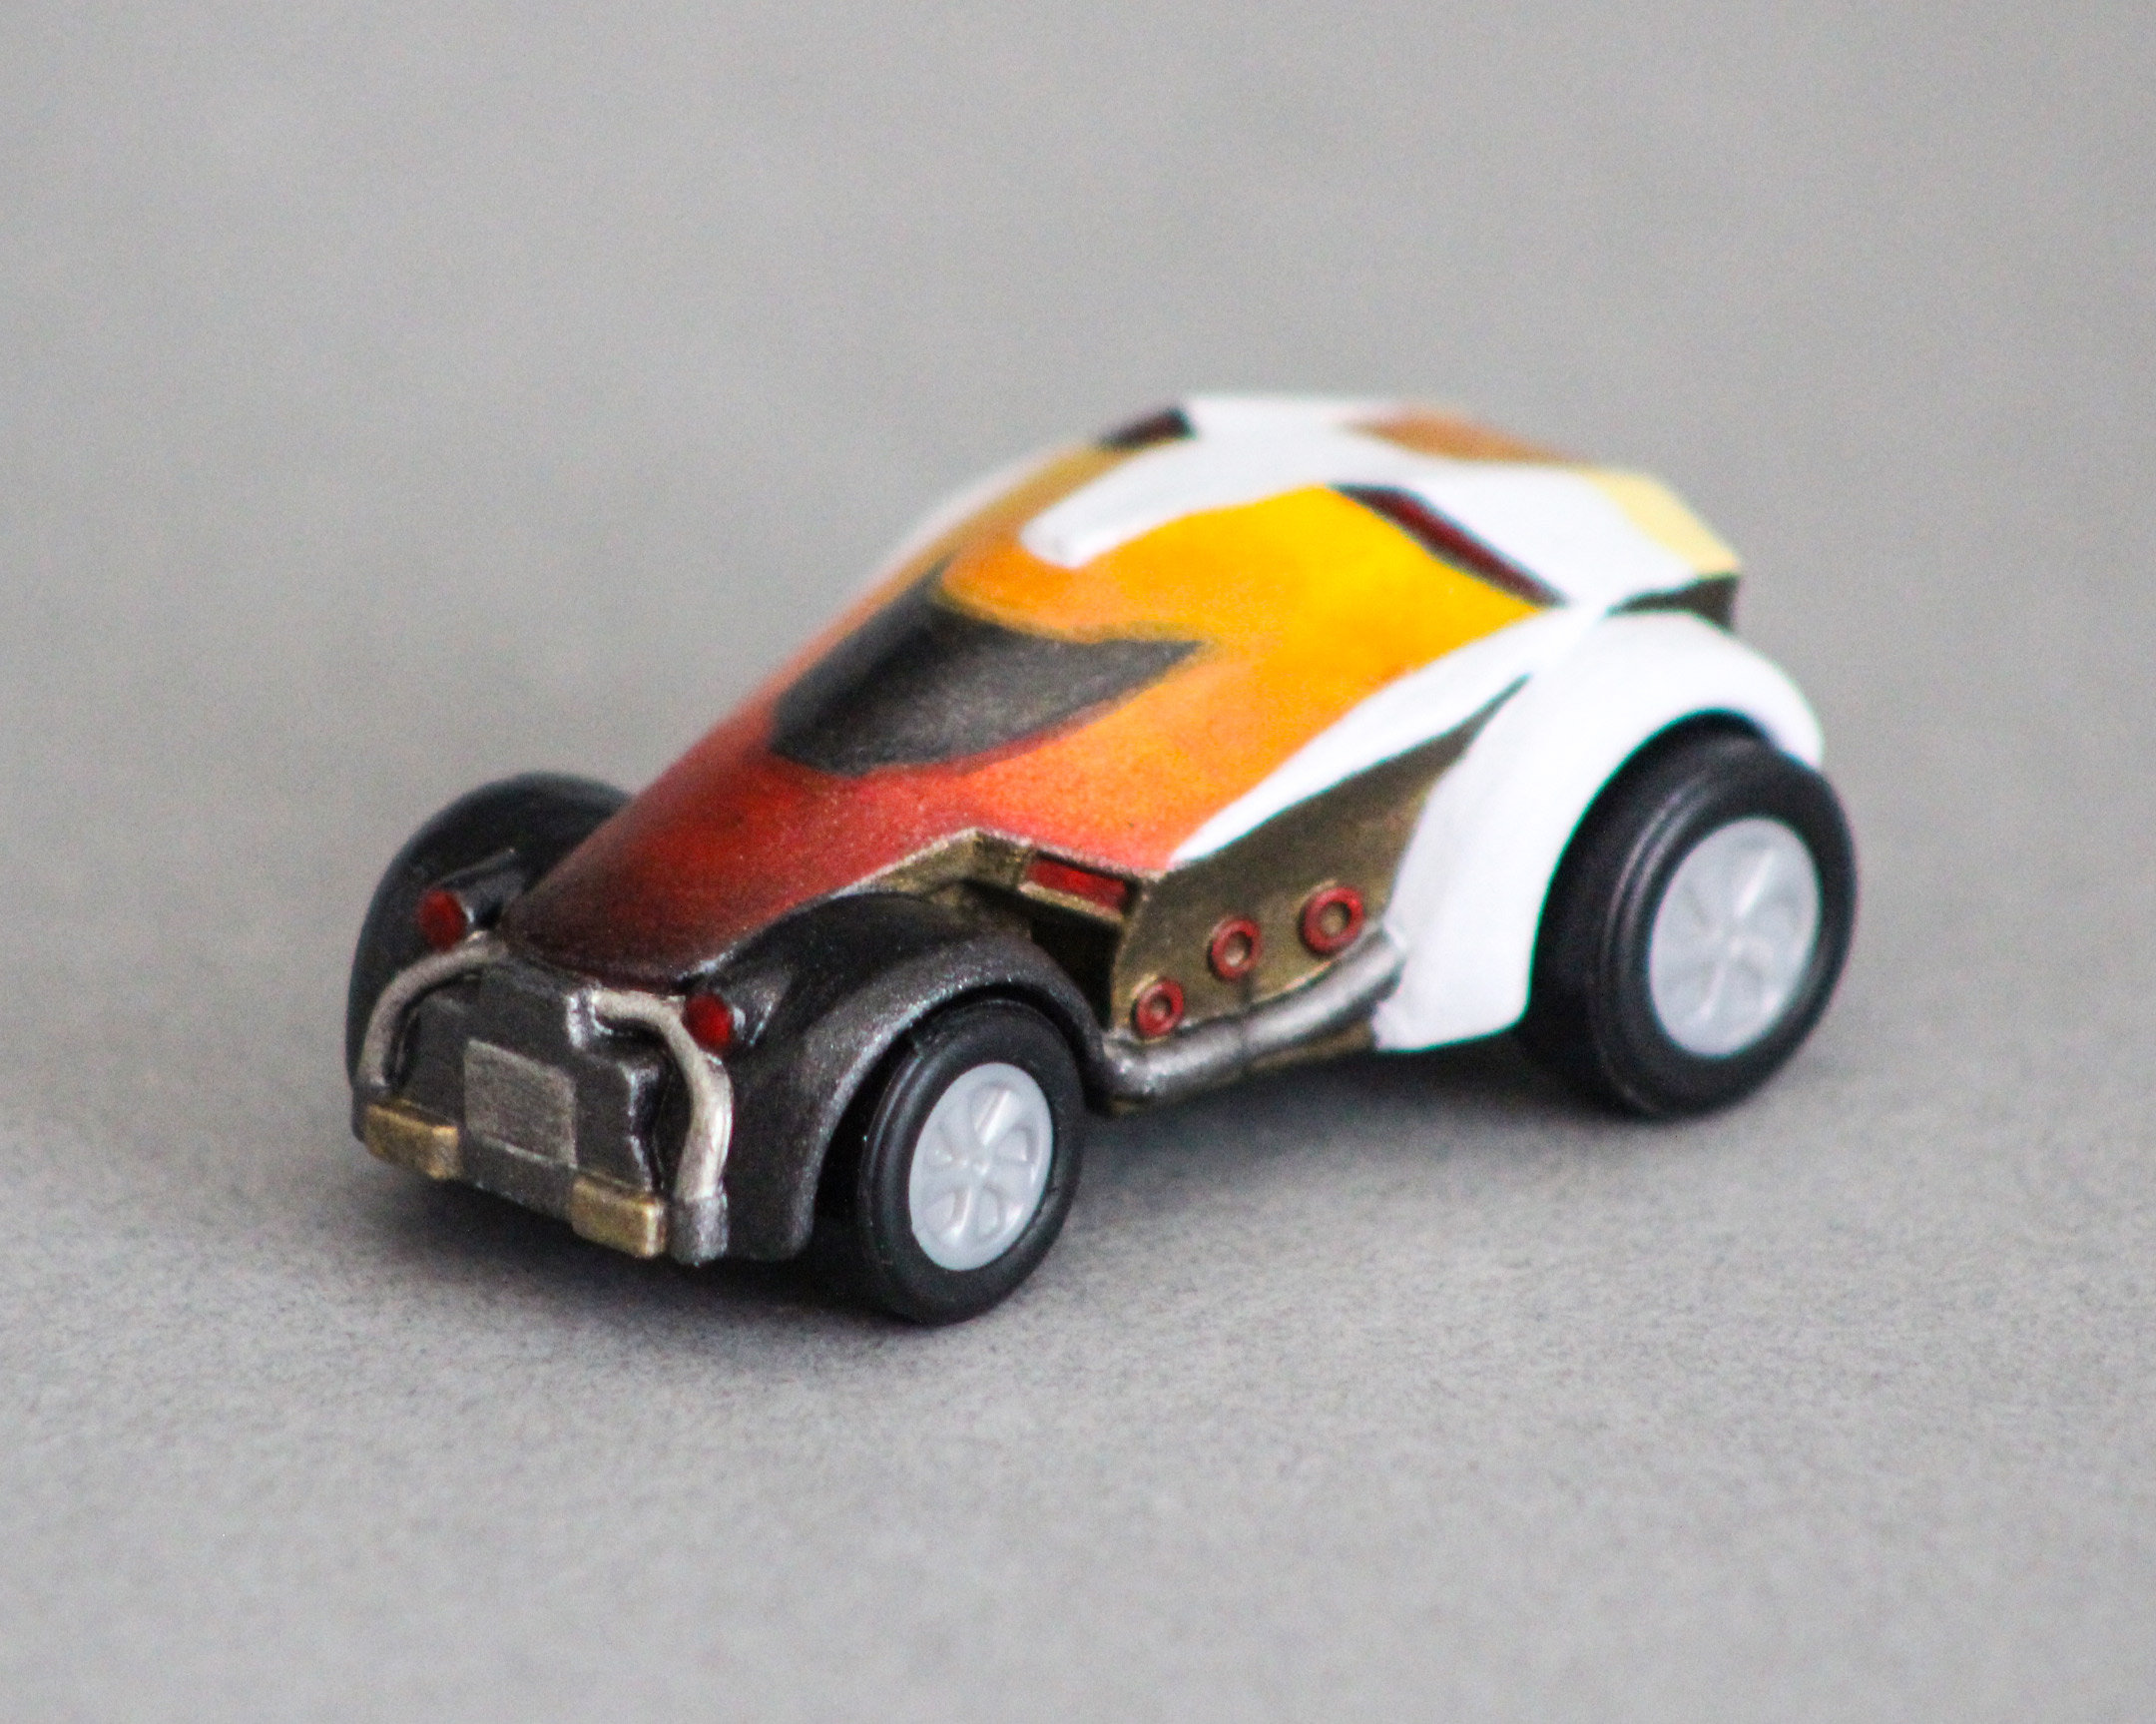 Handmade 'Rocket League' Cars Based on Video Game Characters